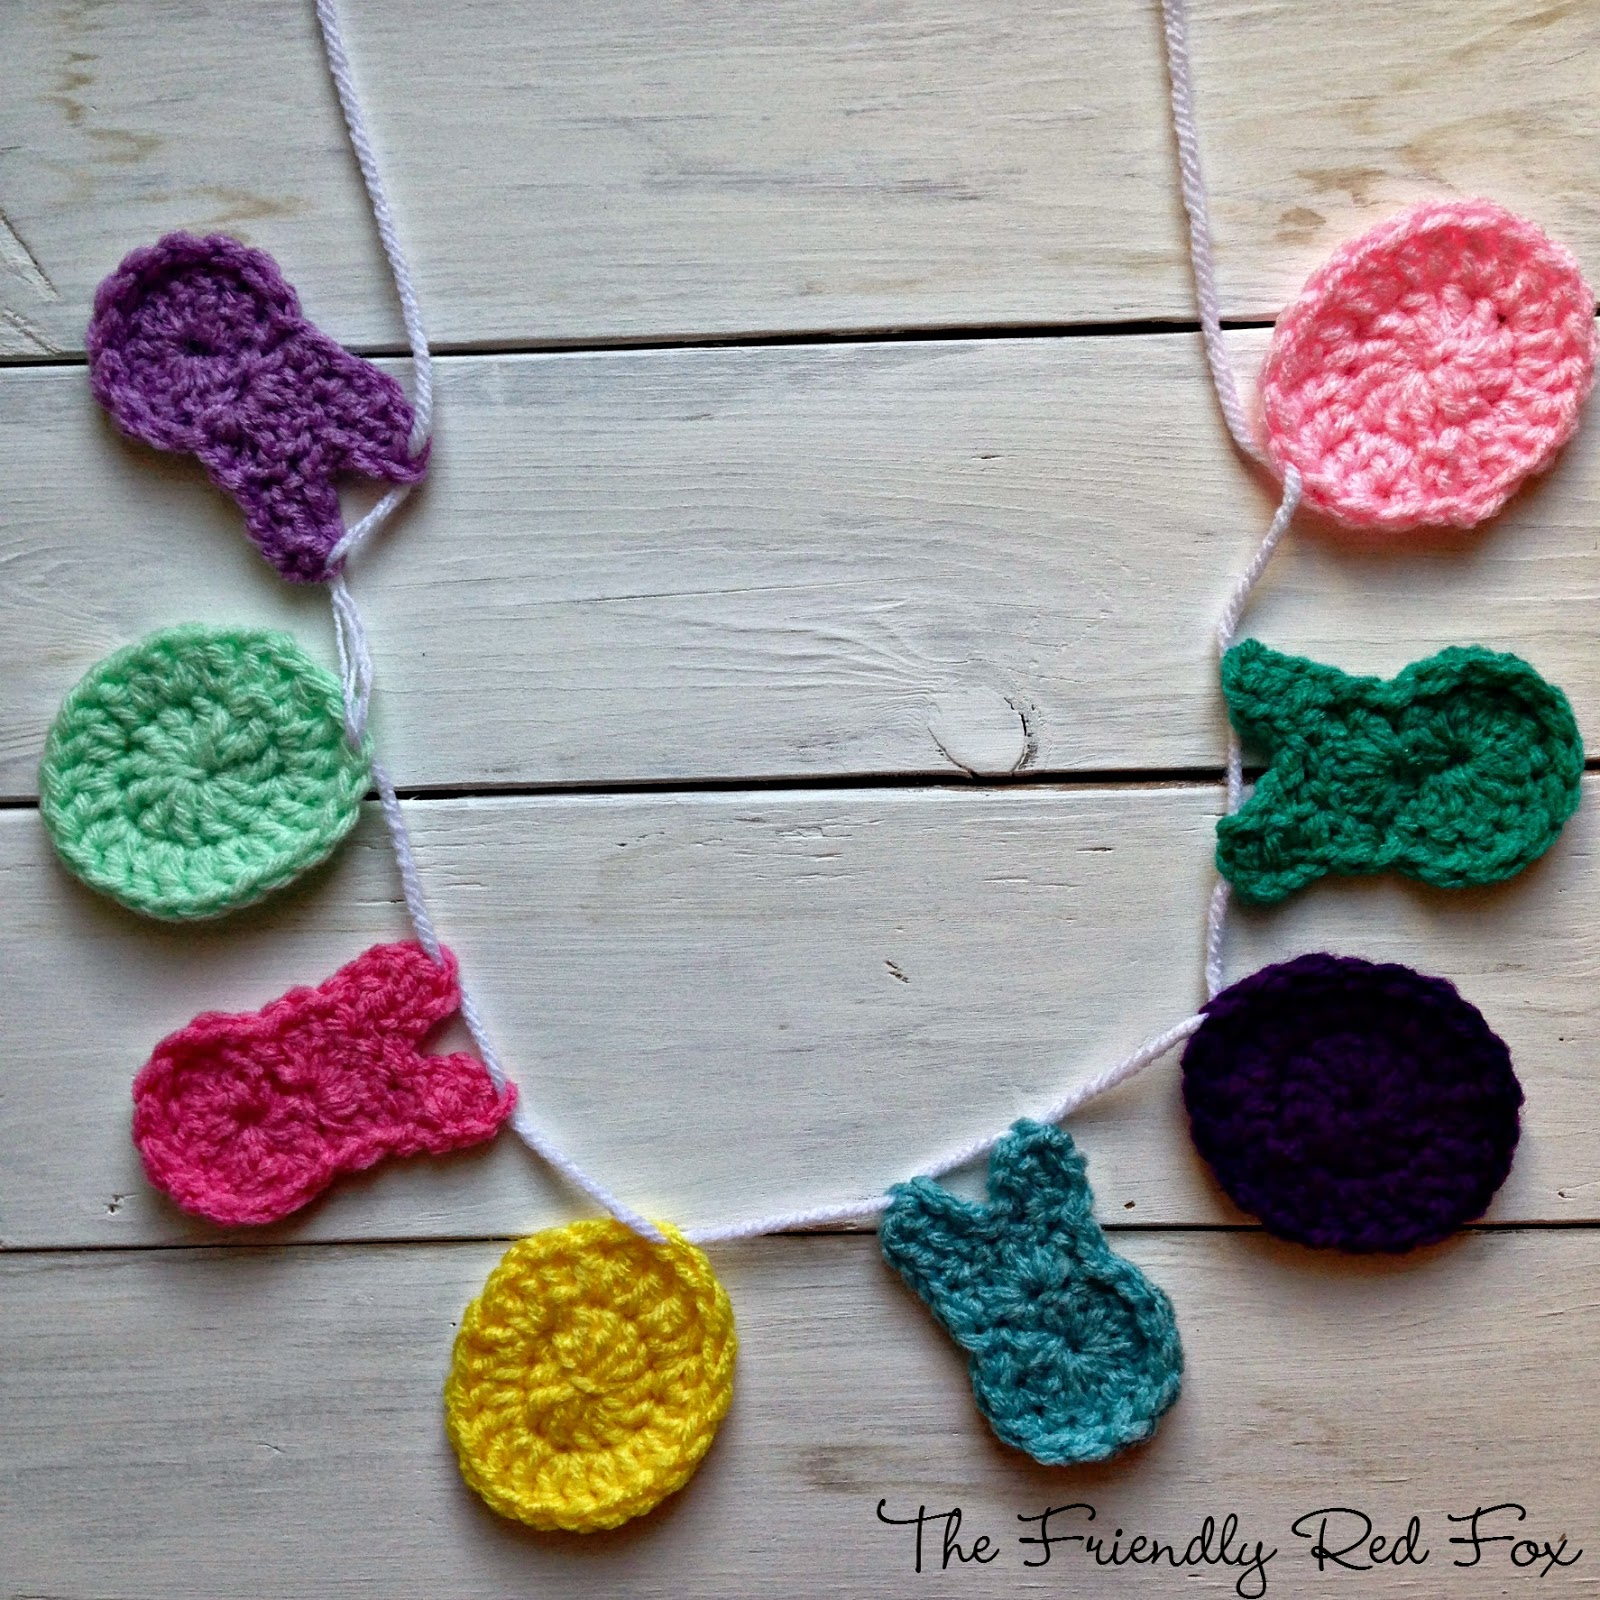 Crochet Stitches Trc : ... TRC in next stitch, TRC in next 3, TRC DC in last stitch, Join and